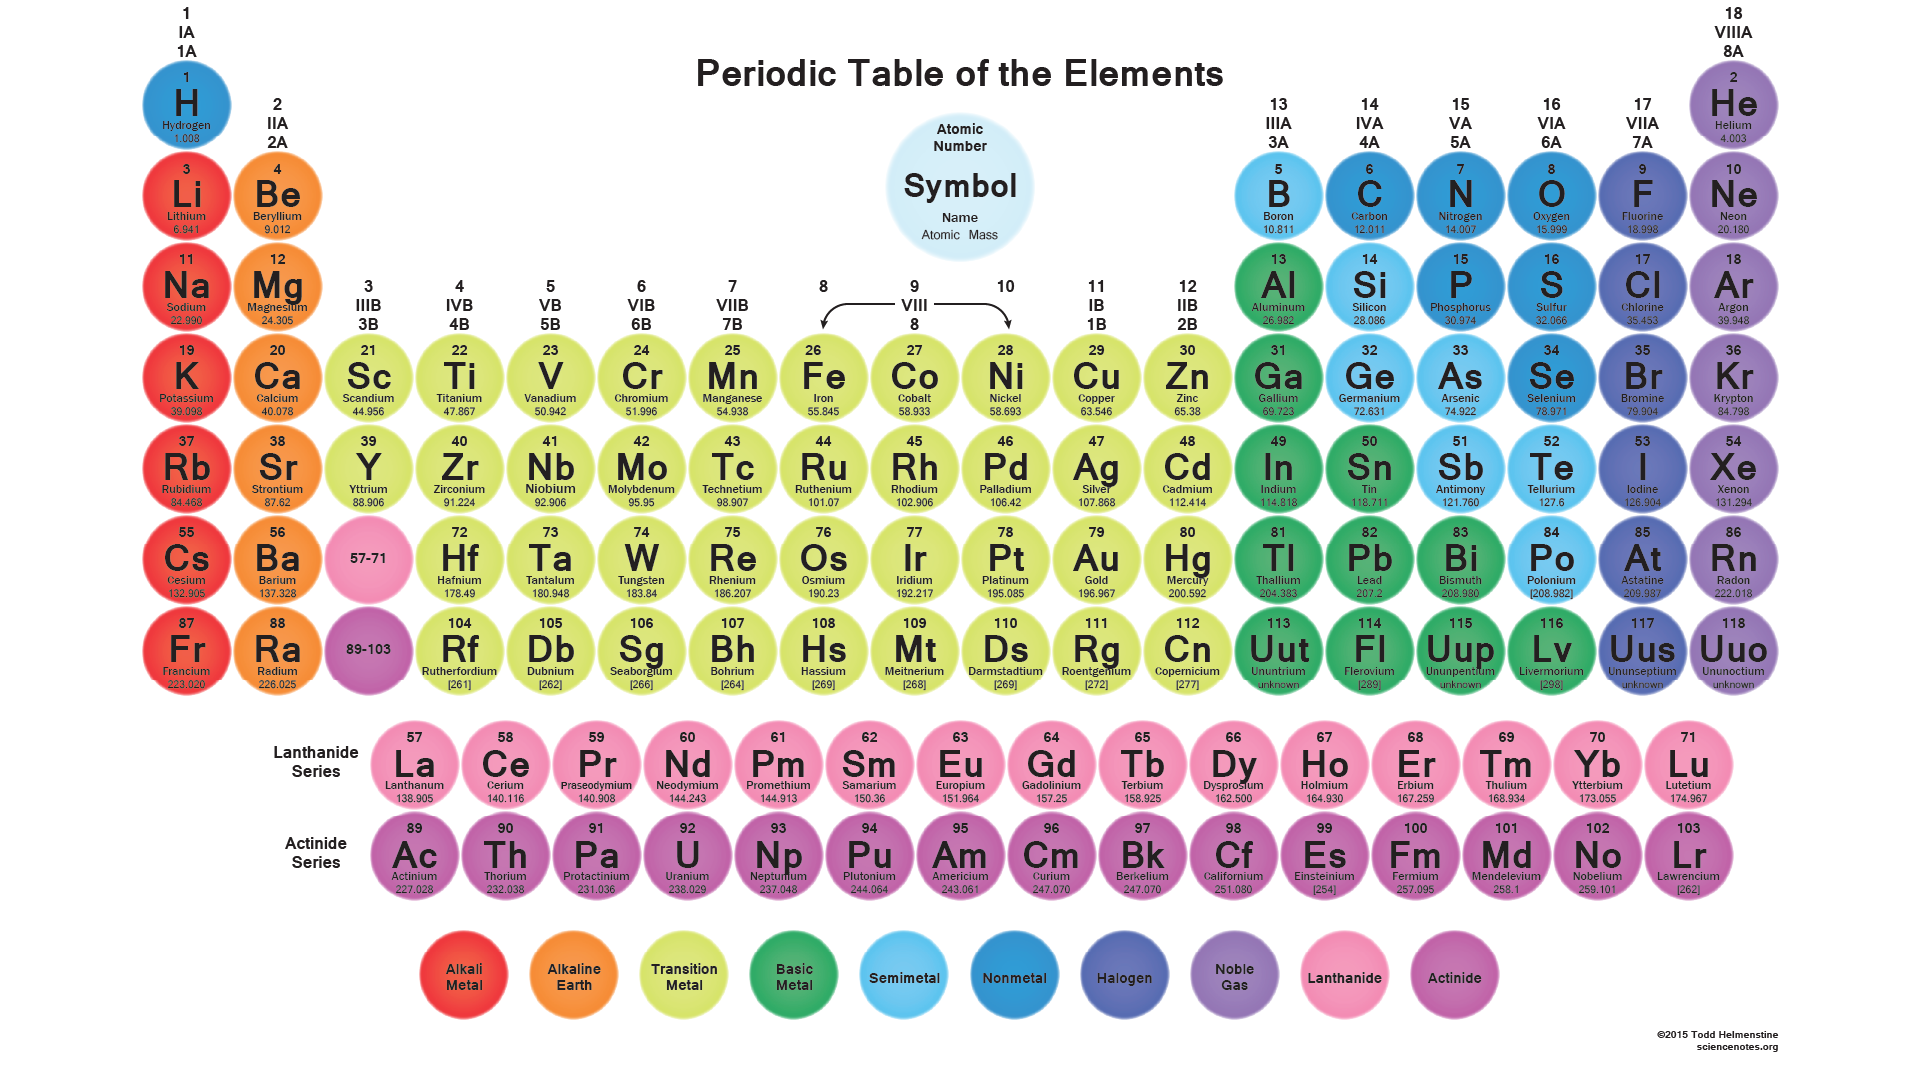 Printable Periodic Tables for Chemistry - Science Notes and Projects